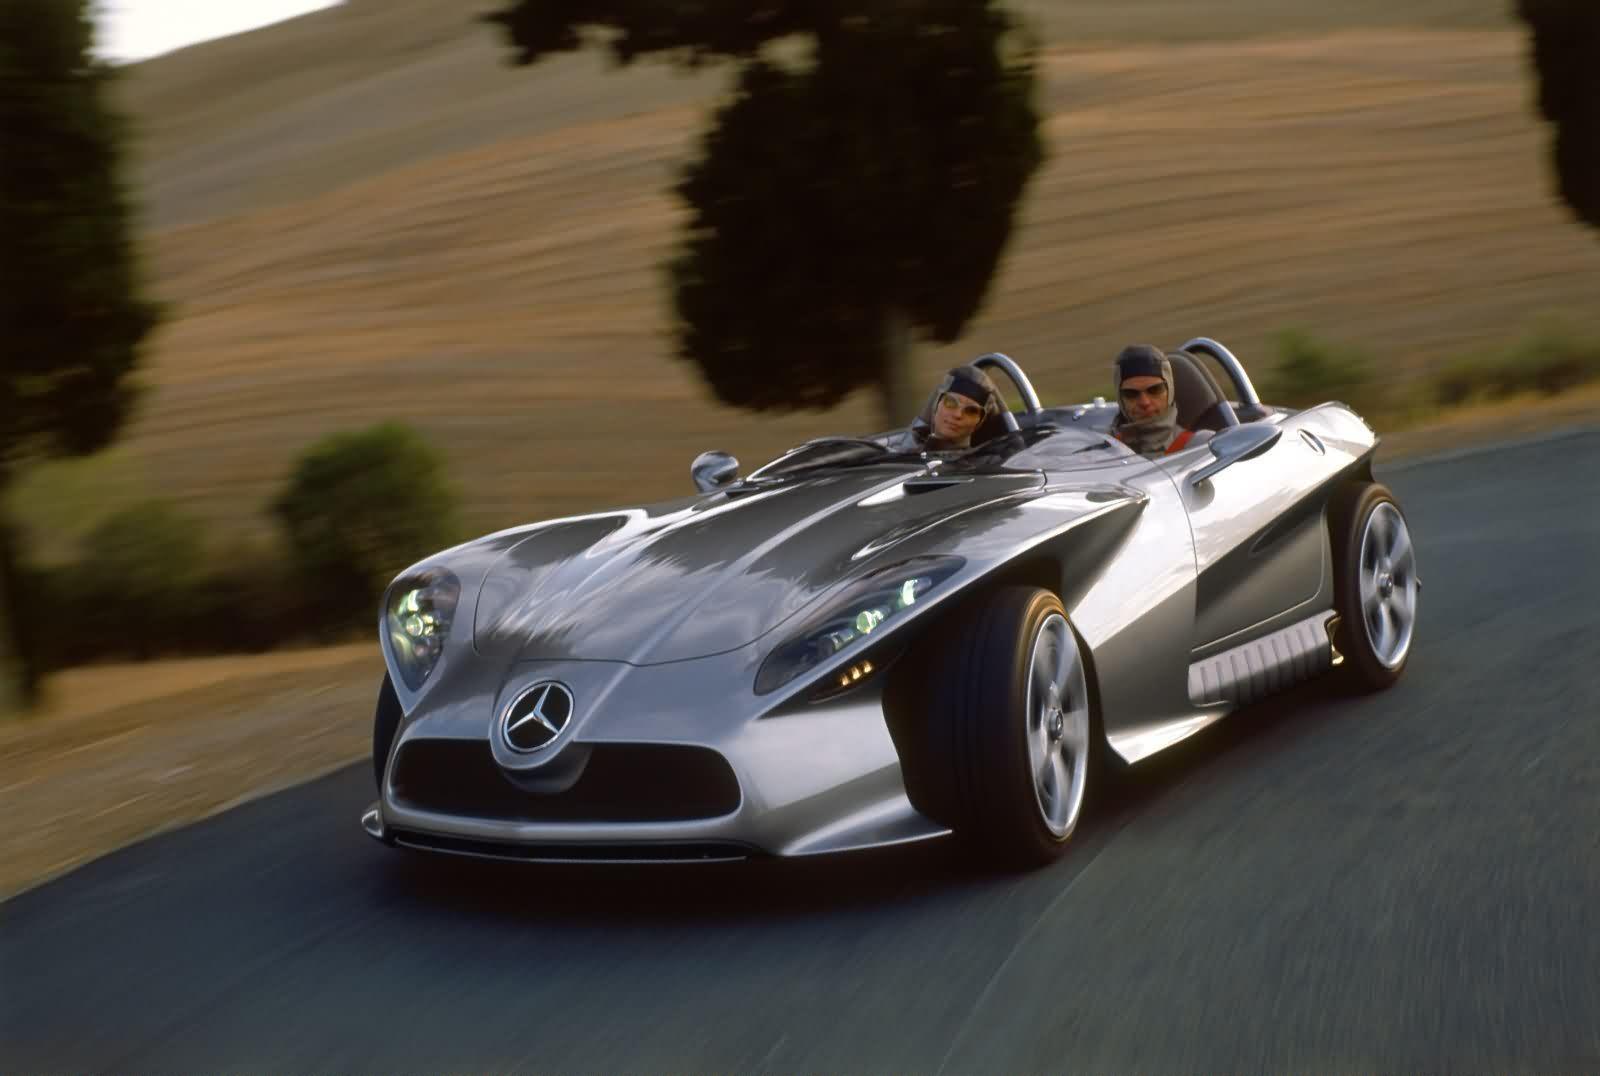 Mercedes-Benz F400 Carving Concept